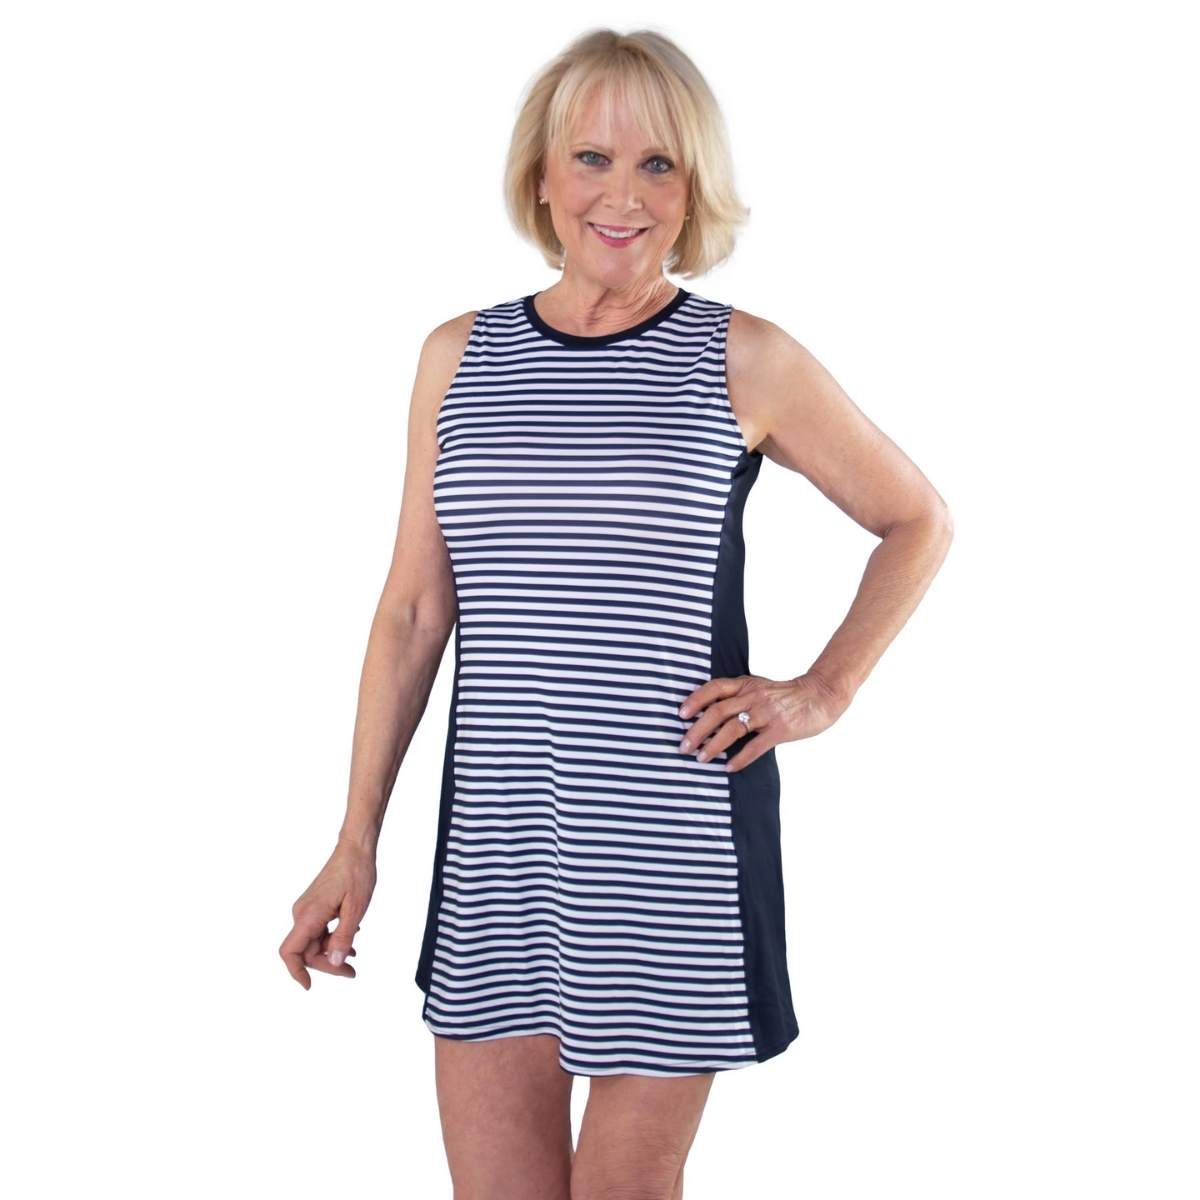 Jofit Women's Sleeveless Swing Stripe Dress